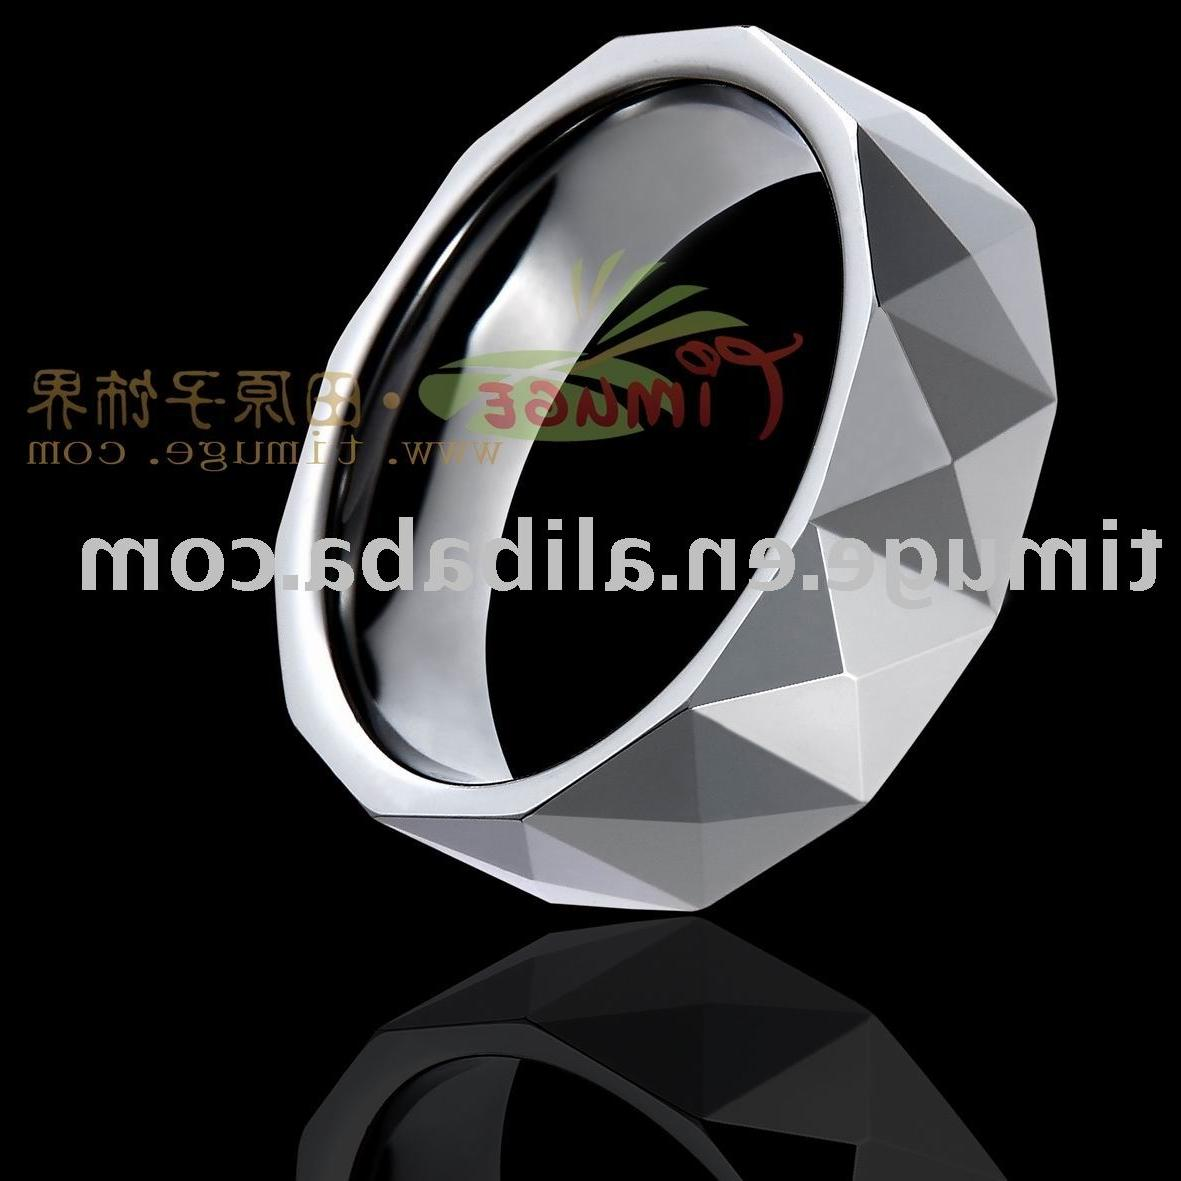 Shiny Tungsten Rings, High Polish Fingle Ring,Faceted Wedding Jewelry